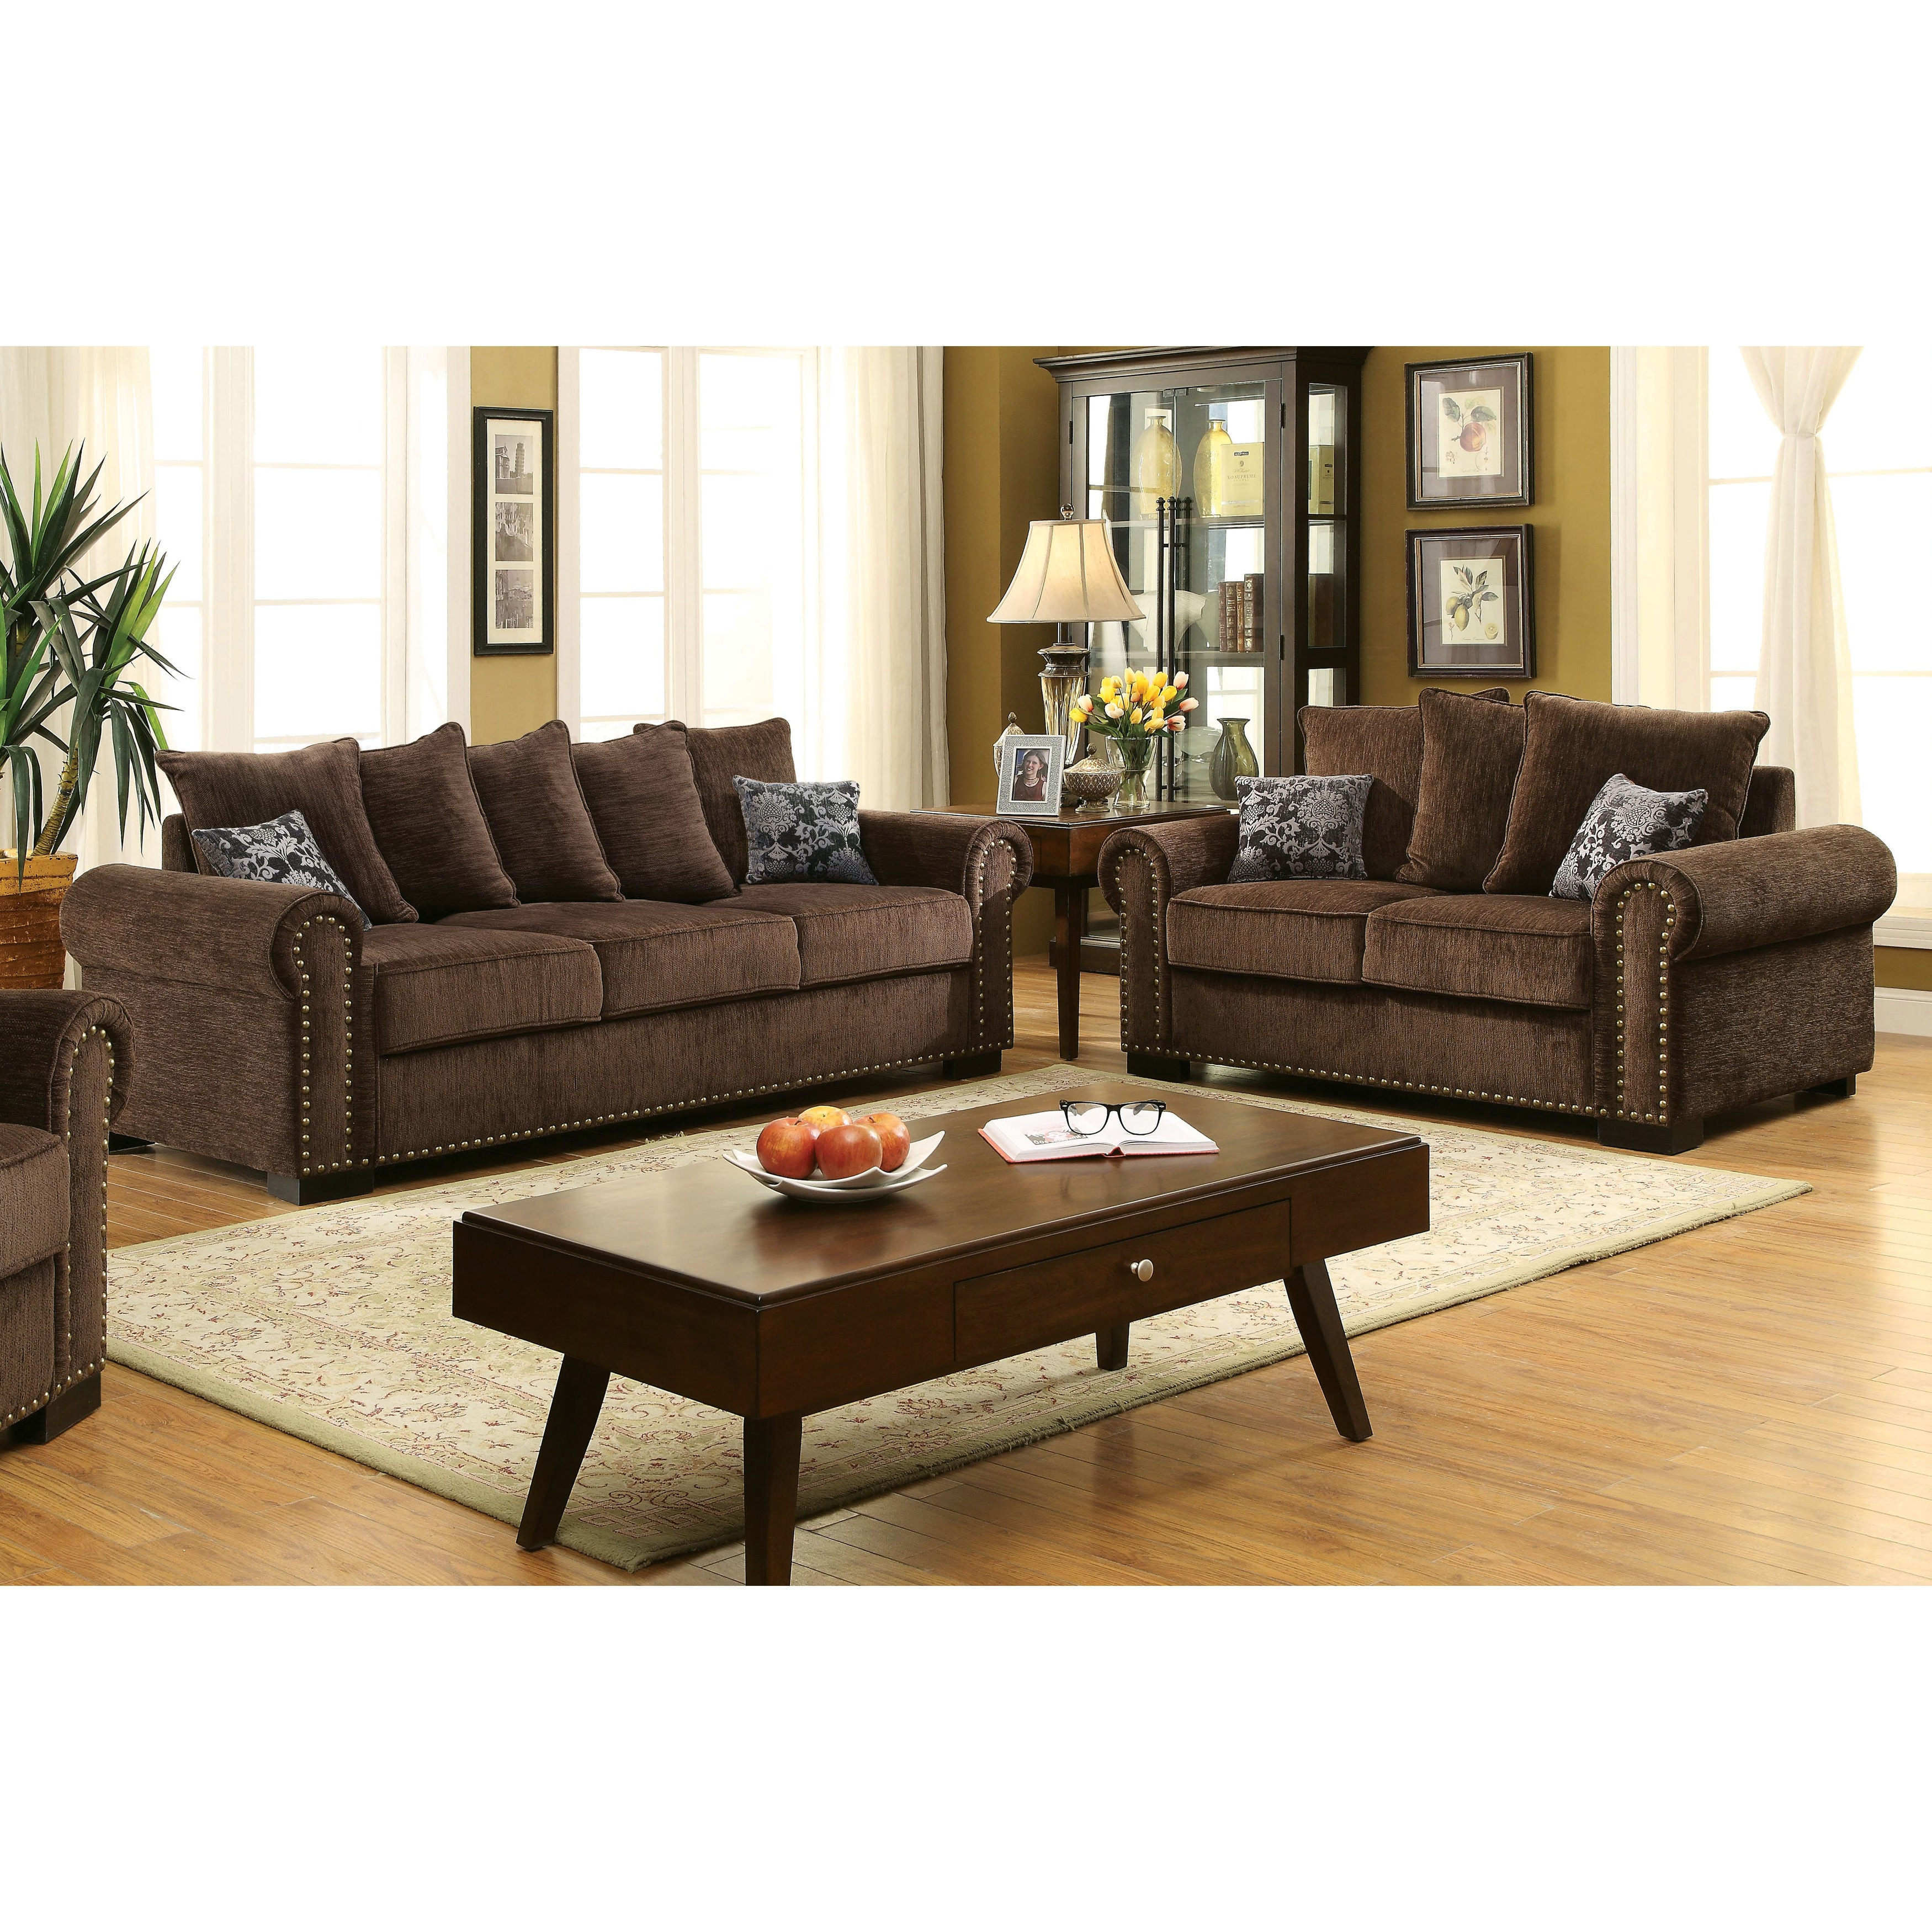 Superbe Shop Furniture Of America Pana Transitional 2 Piece Brown Chenille Sofa Set    On Sale   Free Shipping Today   Overstock.com   11489647